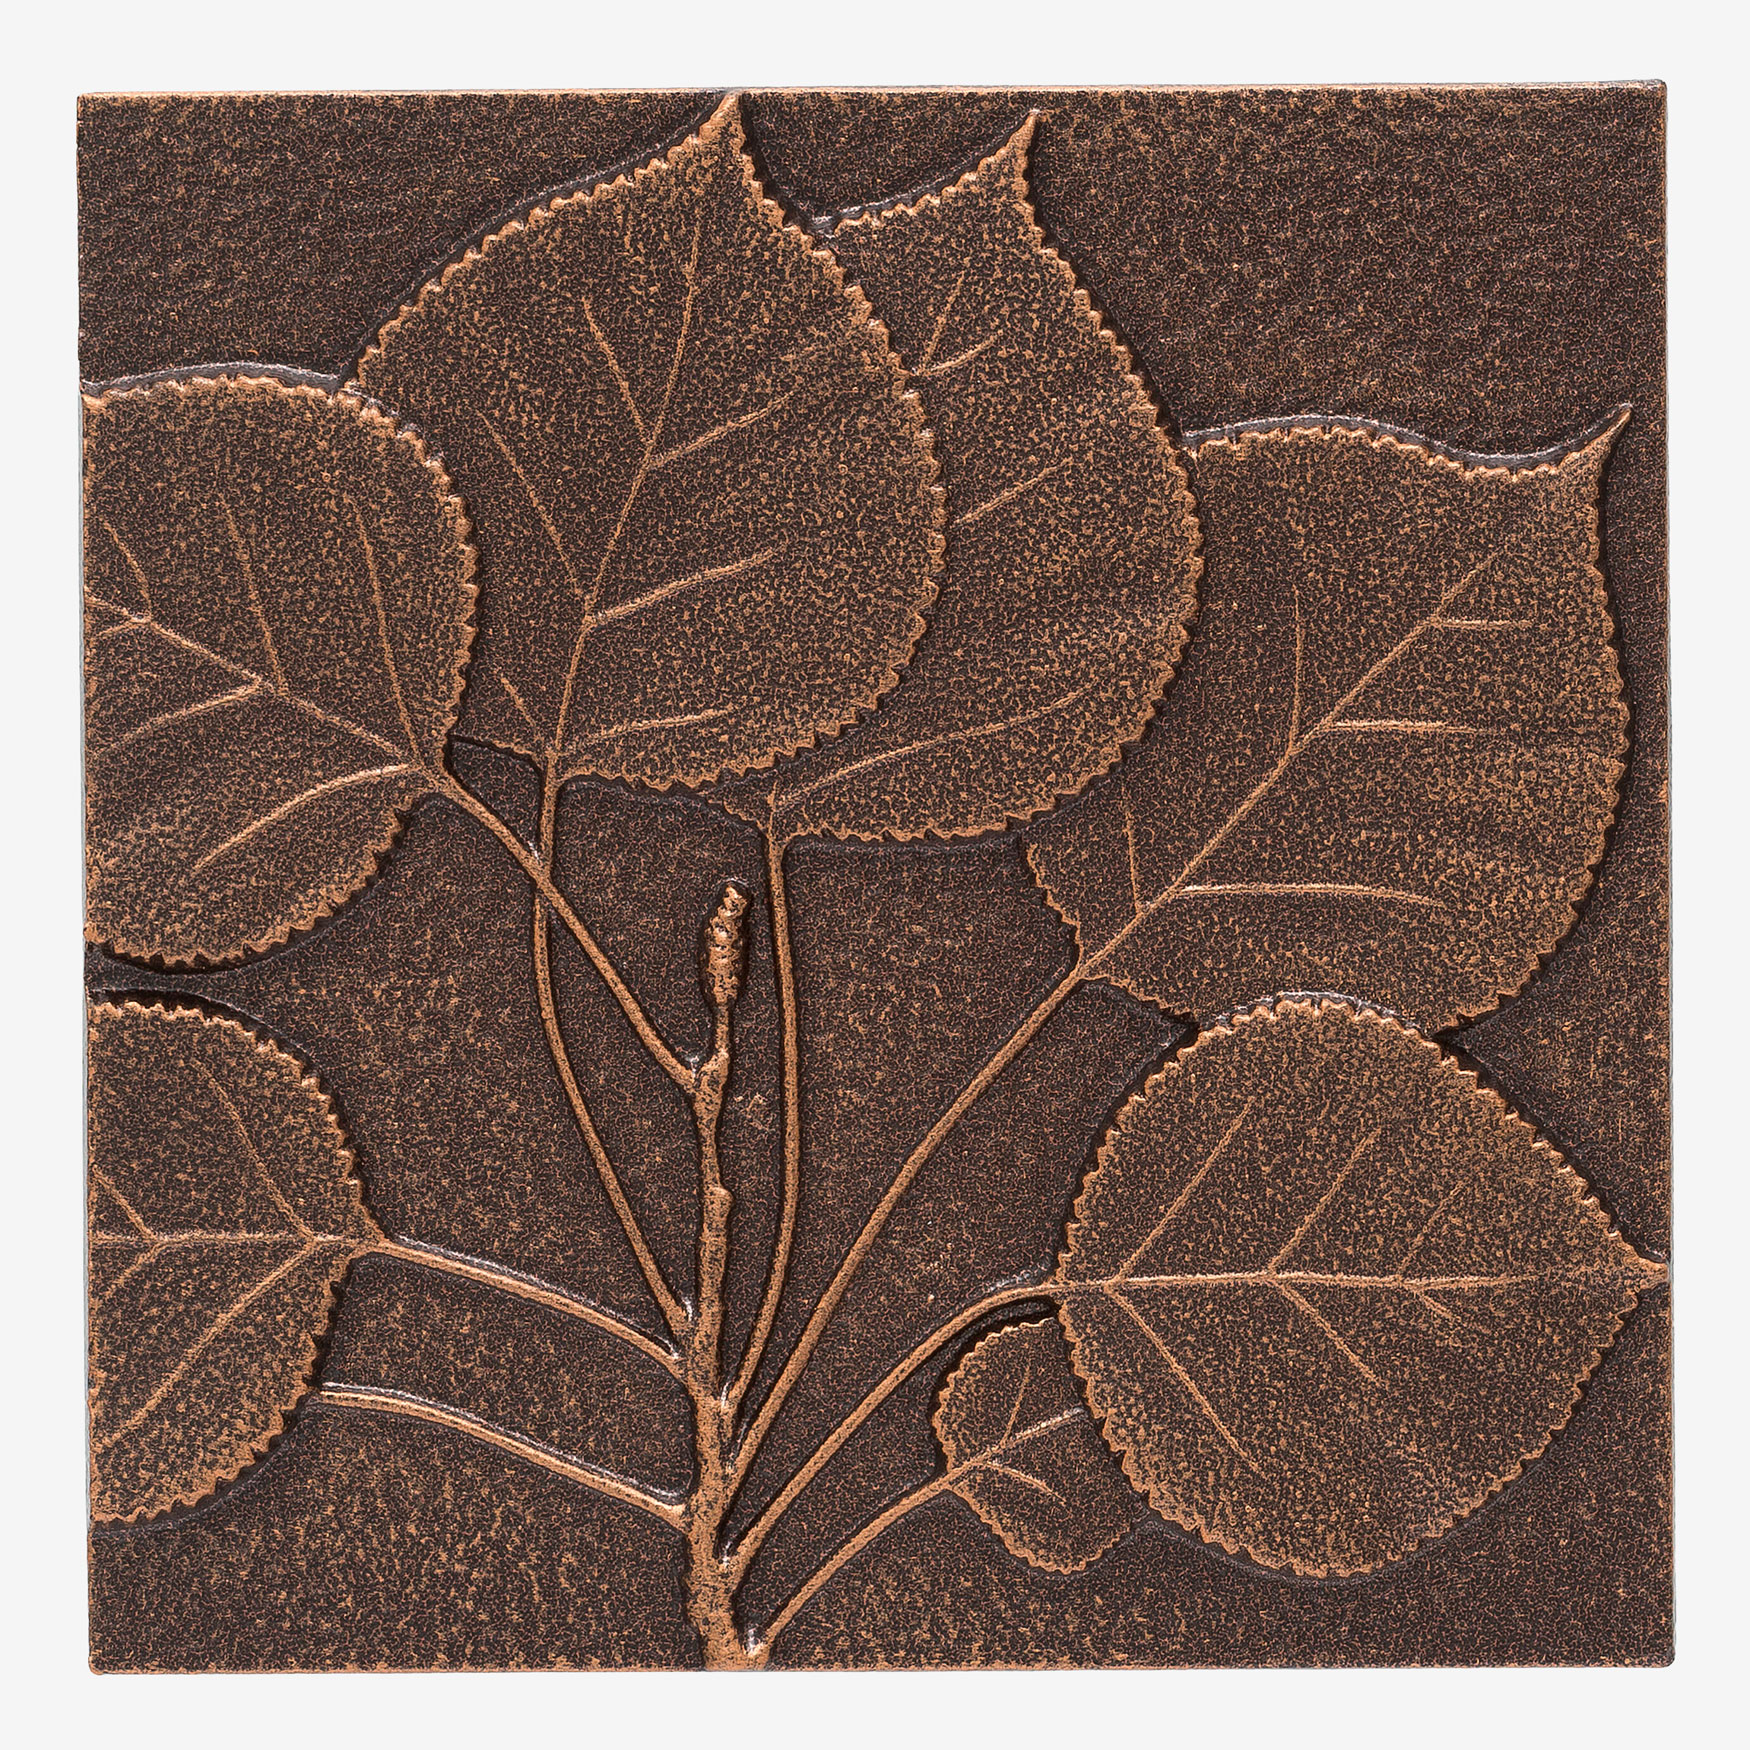 Aspen Leaf Wall Décor, ANTIQUE COPPER